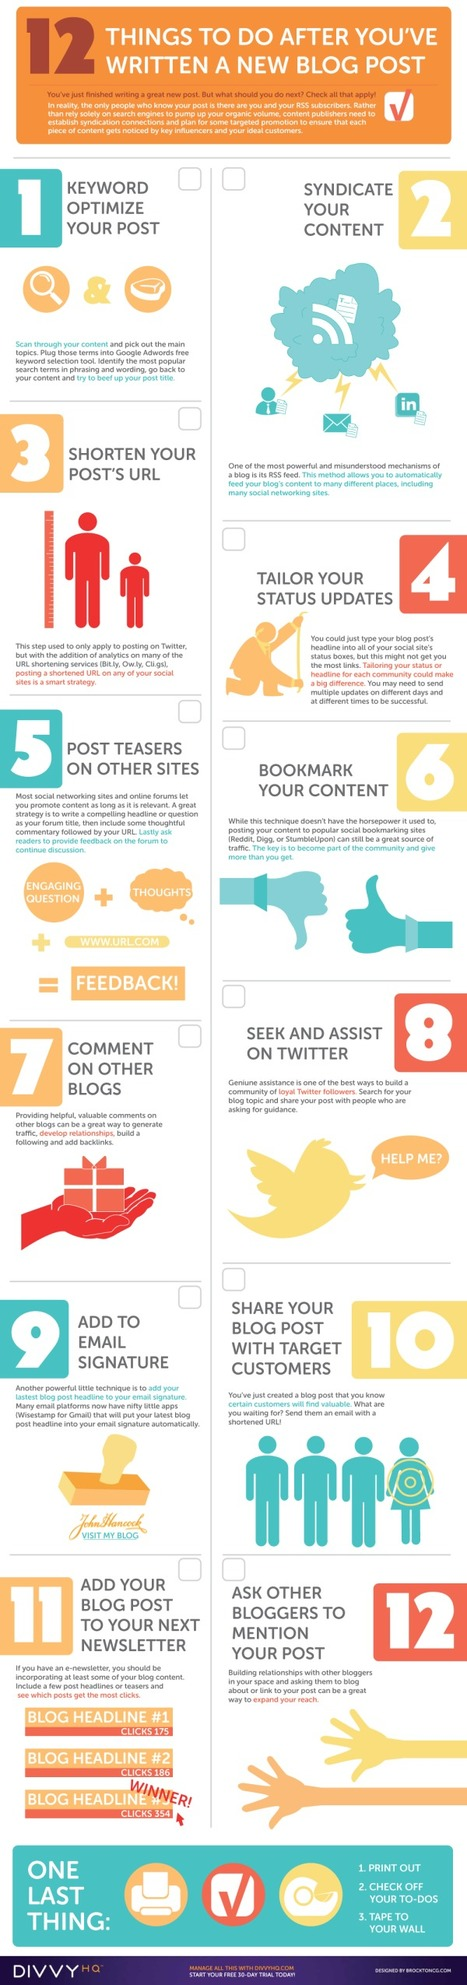 Your Blog Post Promotion Checklist - An Infographic from @DivvyHQ | e-marketing and design | Scoop.it